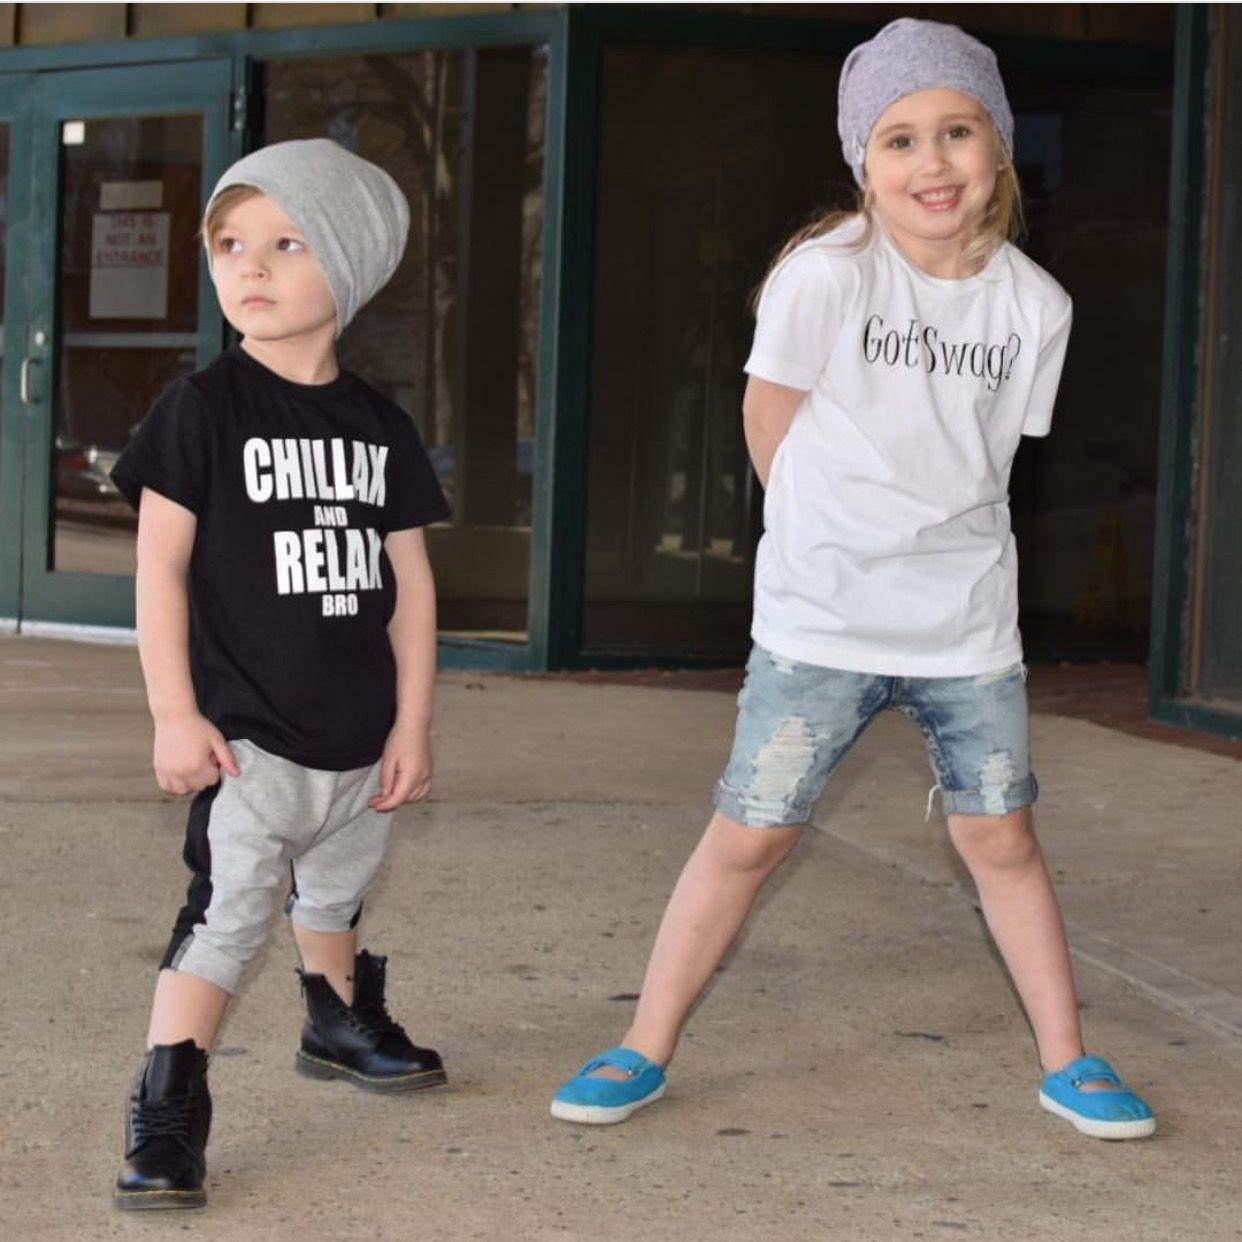 These cousins looking crazy cute in our beanies